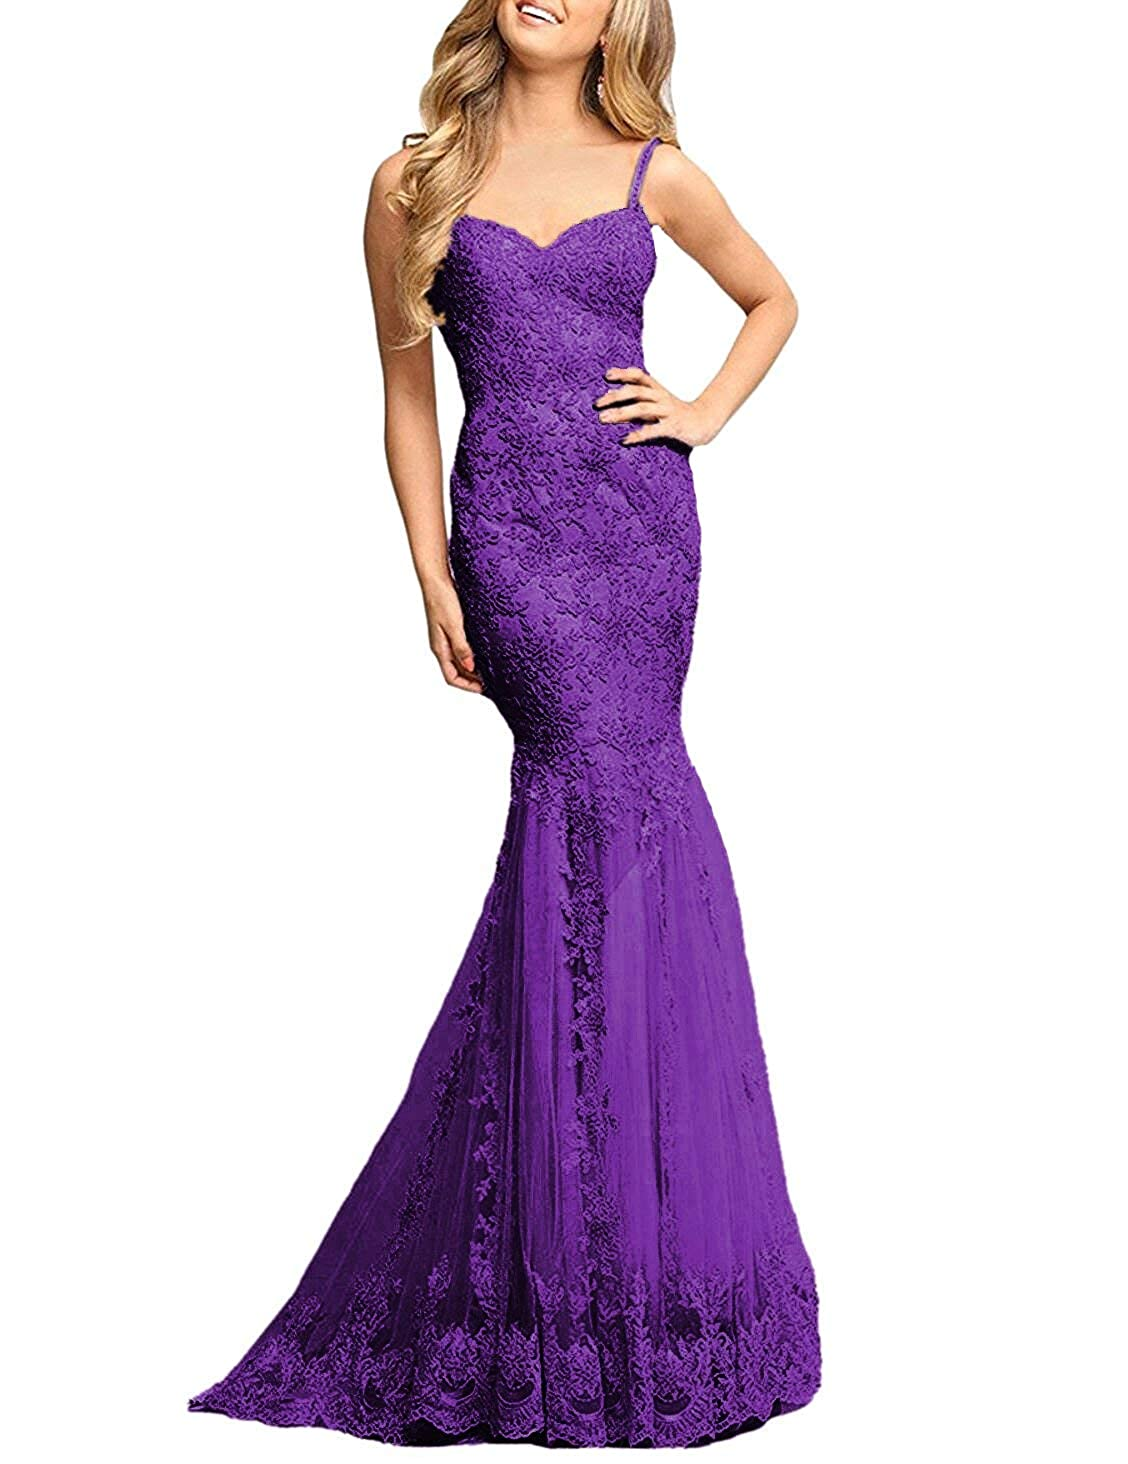 Ruisha Women Lace Beaded Off Shoulder Formal Prom Evening Dresses Gowns Long Mermaid 2018 RS0046